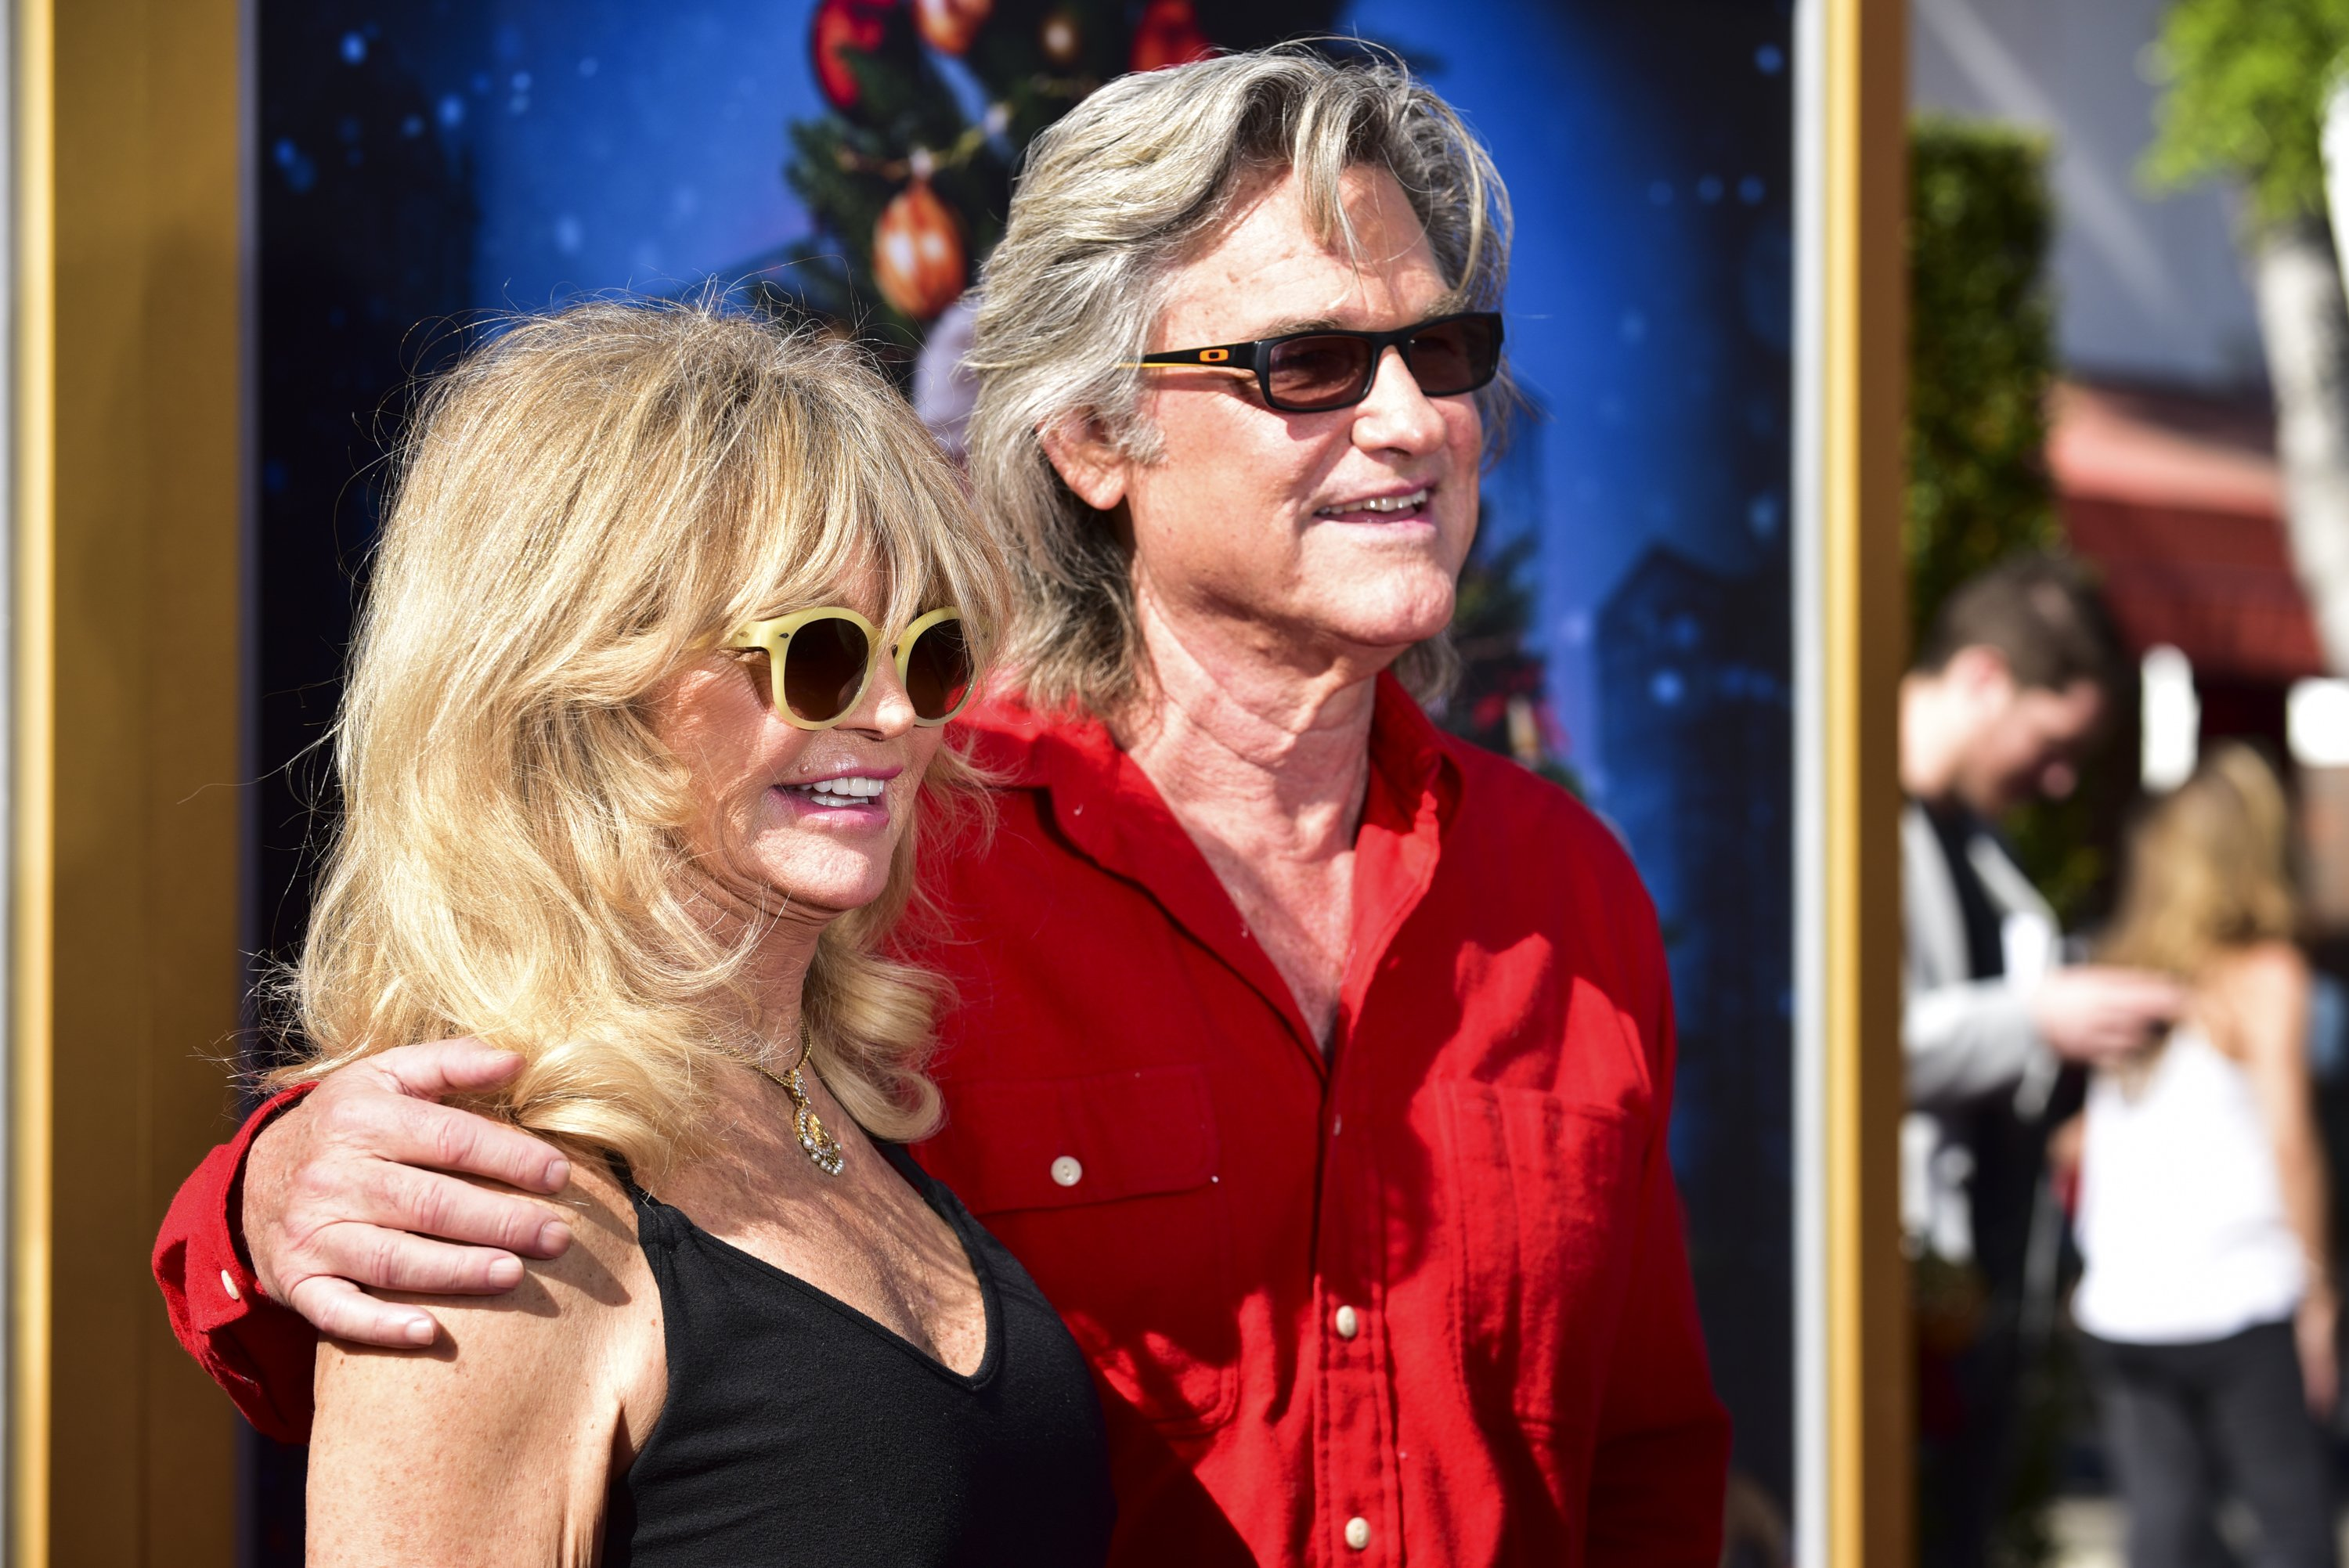 """Goldie Hawn and Kurt Russell attend the premiere of """"The Christmas Chronicles"""" in Los Angeles, California on November 18, 2018 